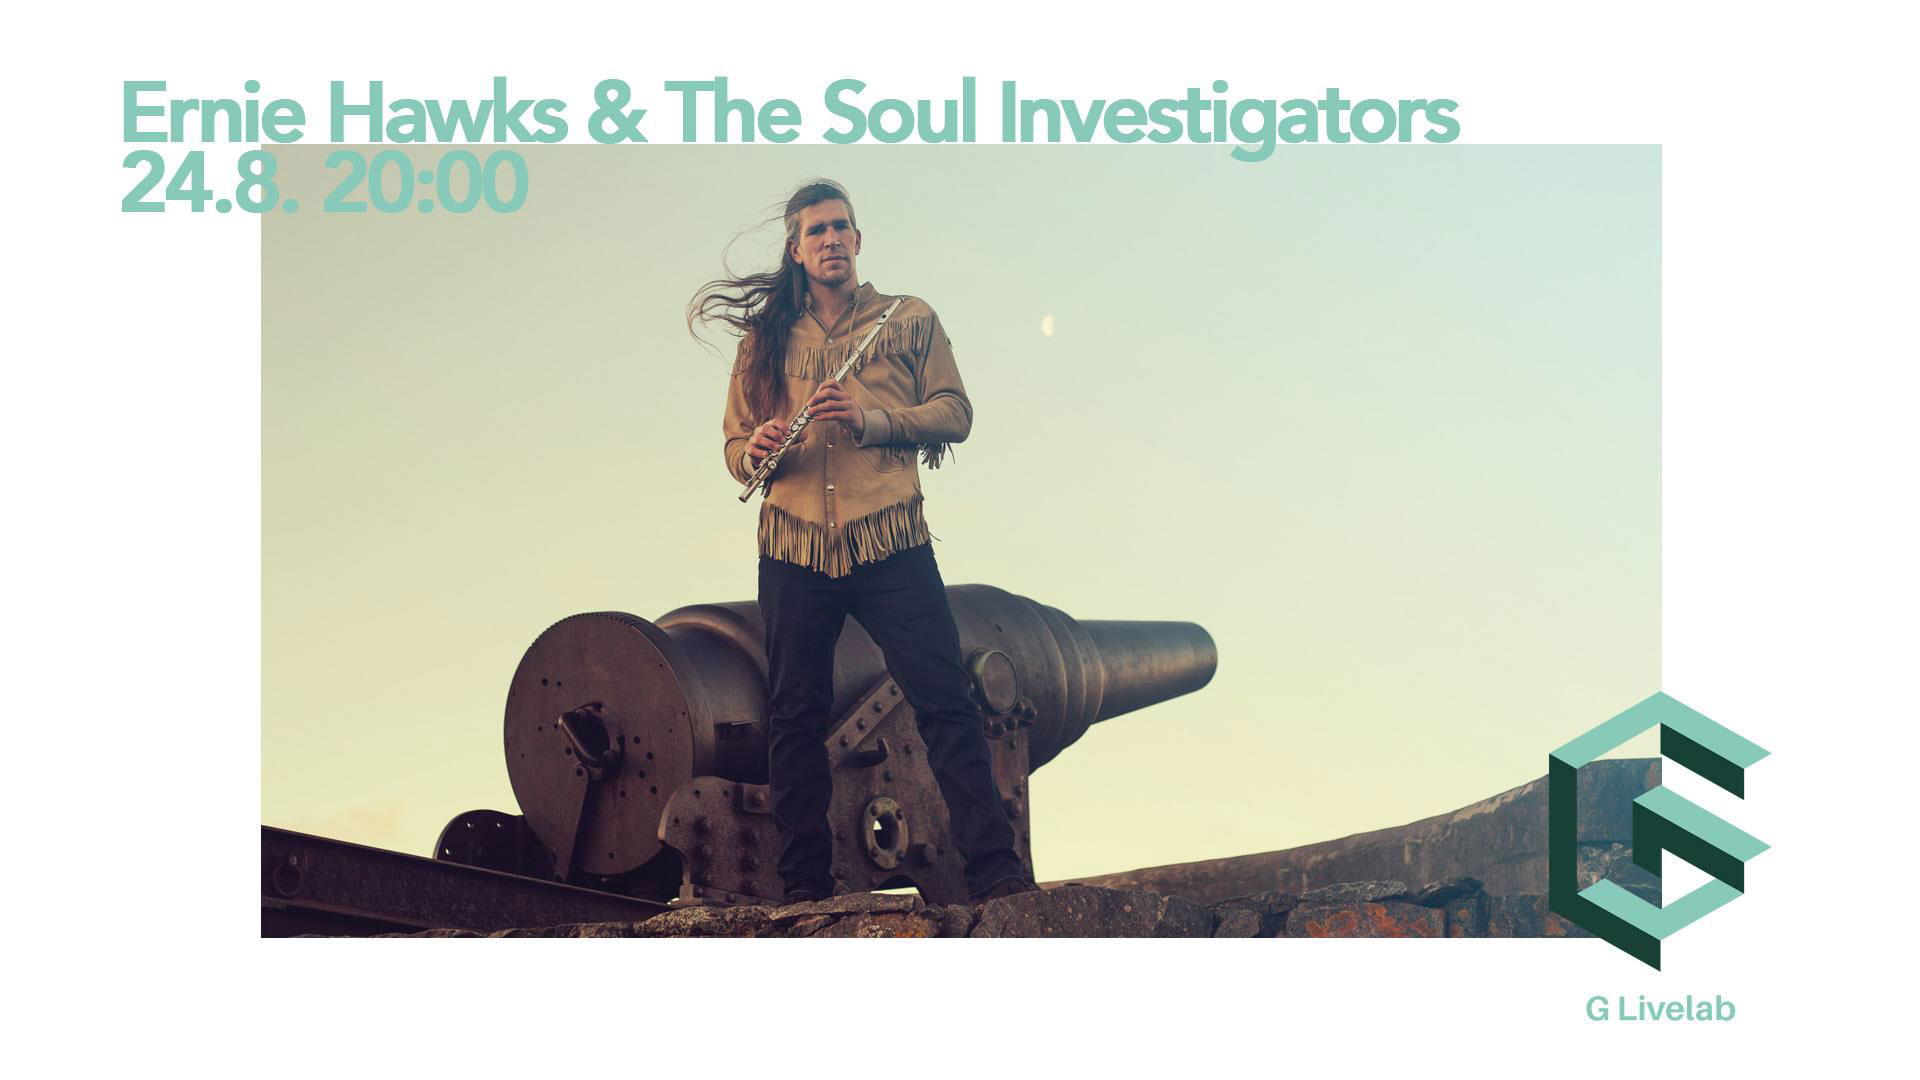 Link to event Ernie Hawks & The Soul Investigators  CANCELLED!!